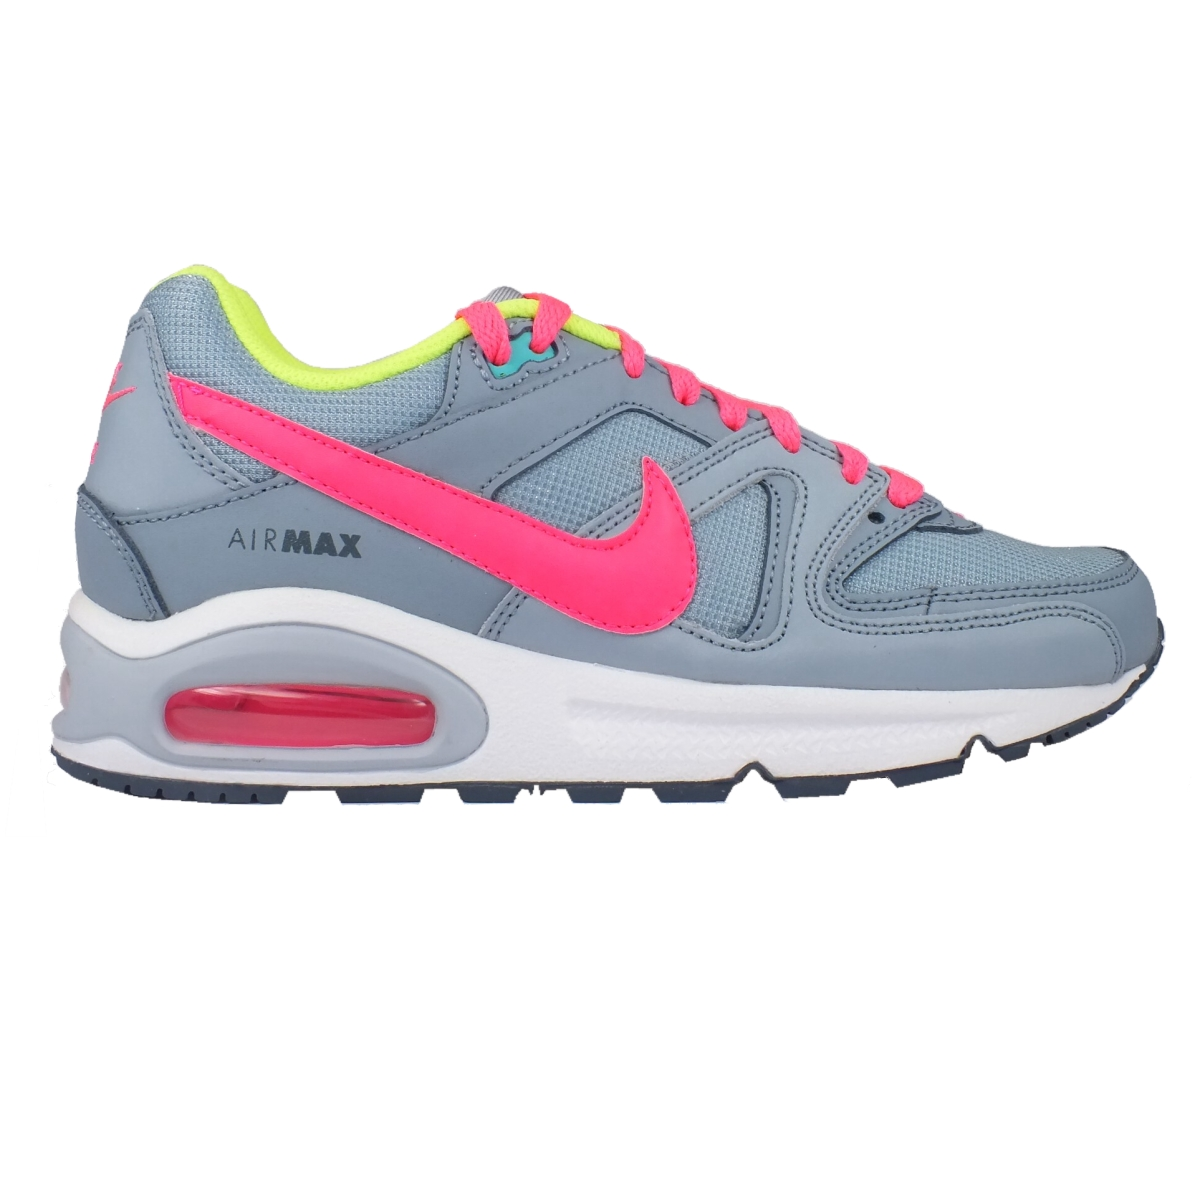 nike air max command gs damen kinder schuhe turnschuhe. Black Bedroom Furniture Sets. Home Design Ideas